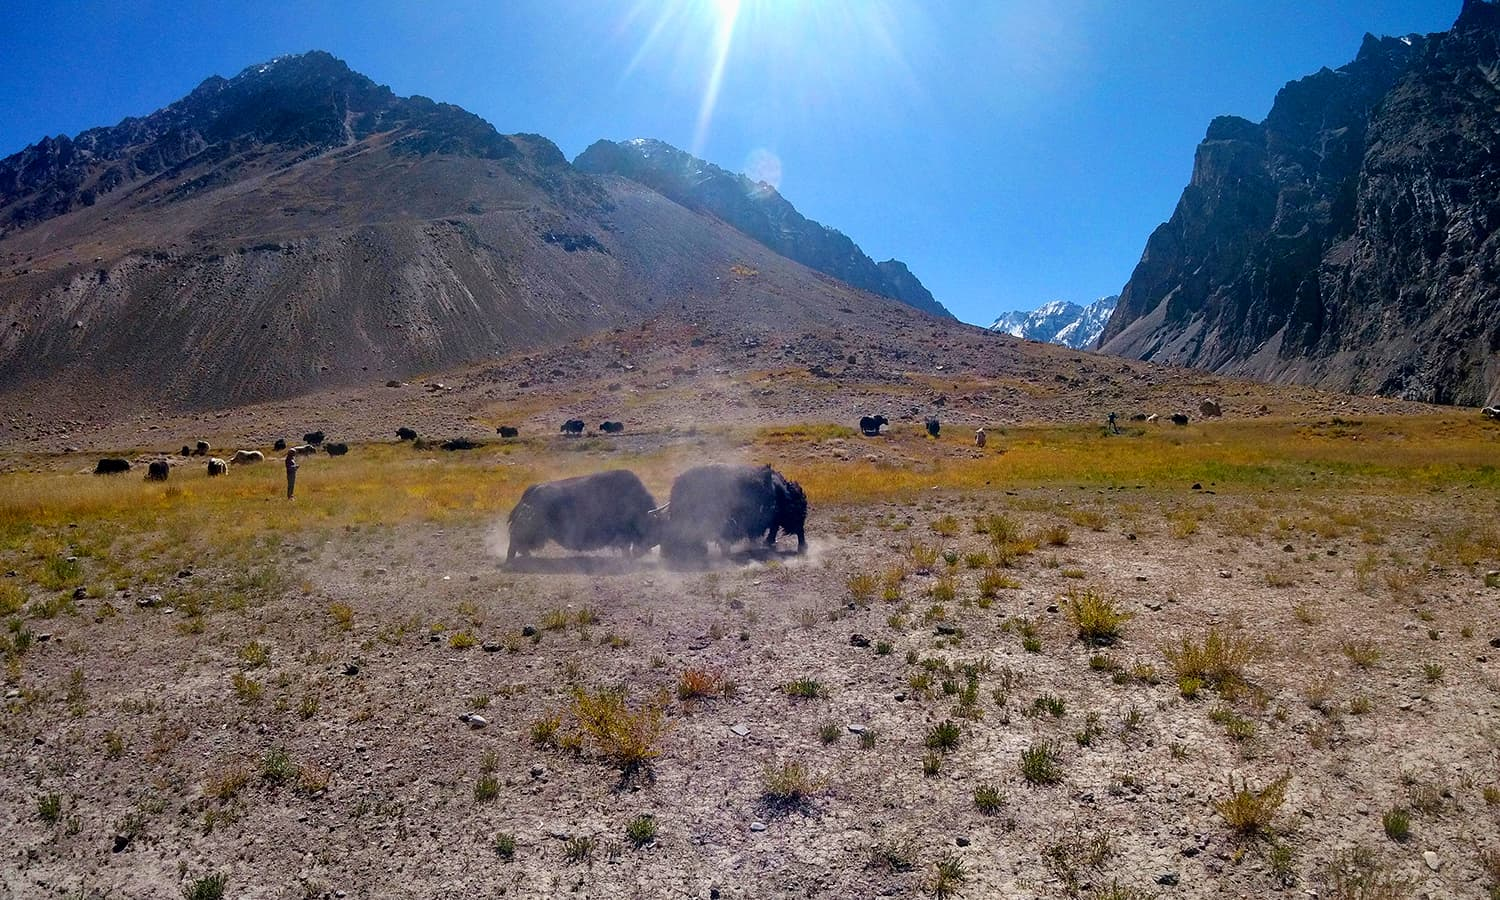 Day 5: Yaks with their horns locked having descended from Dhee Dasth in the backdrop.—All photos by the author